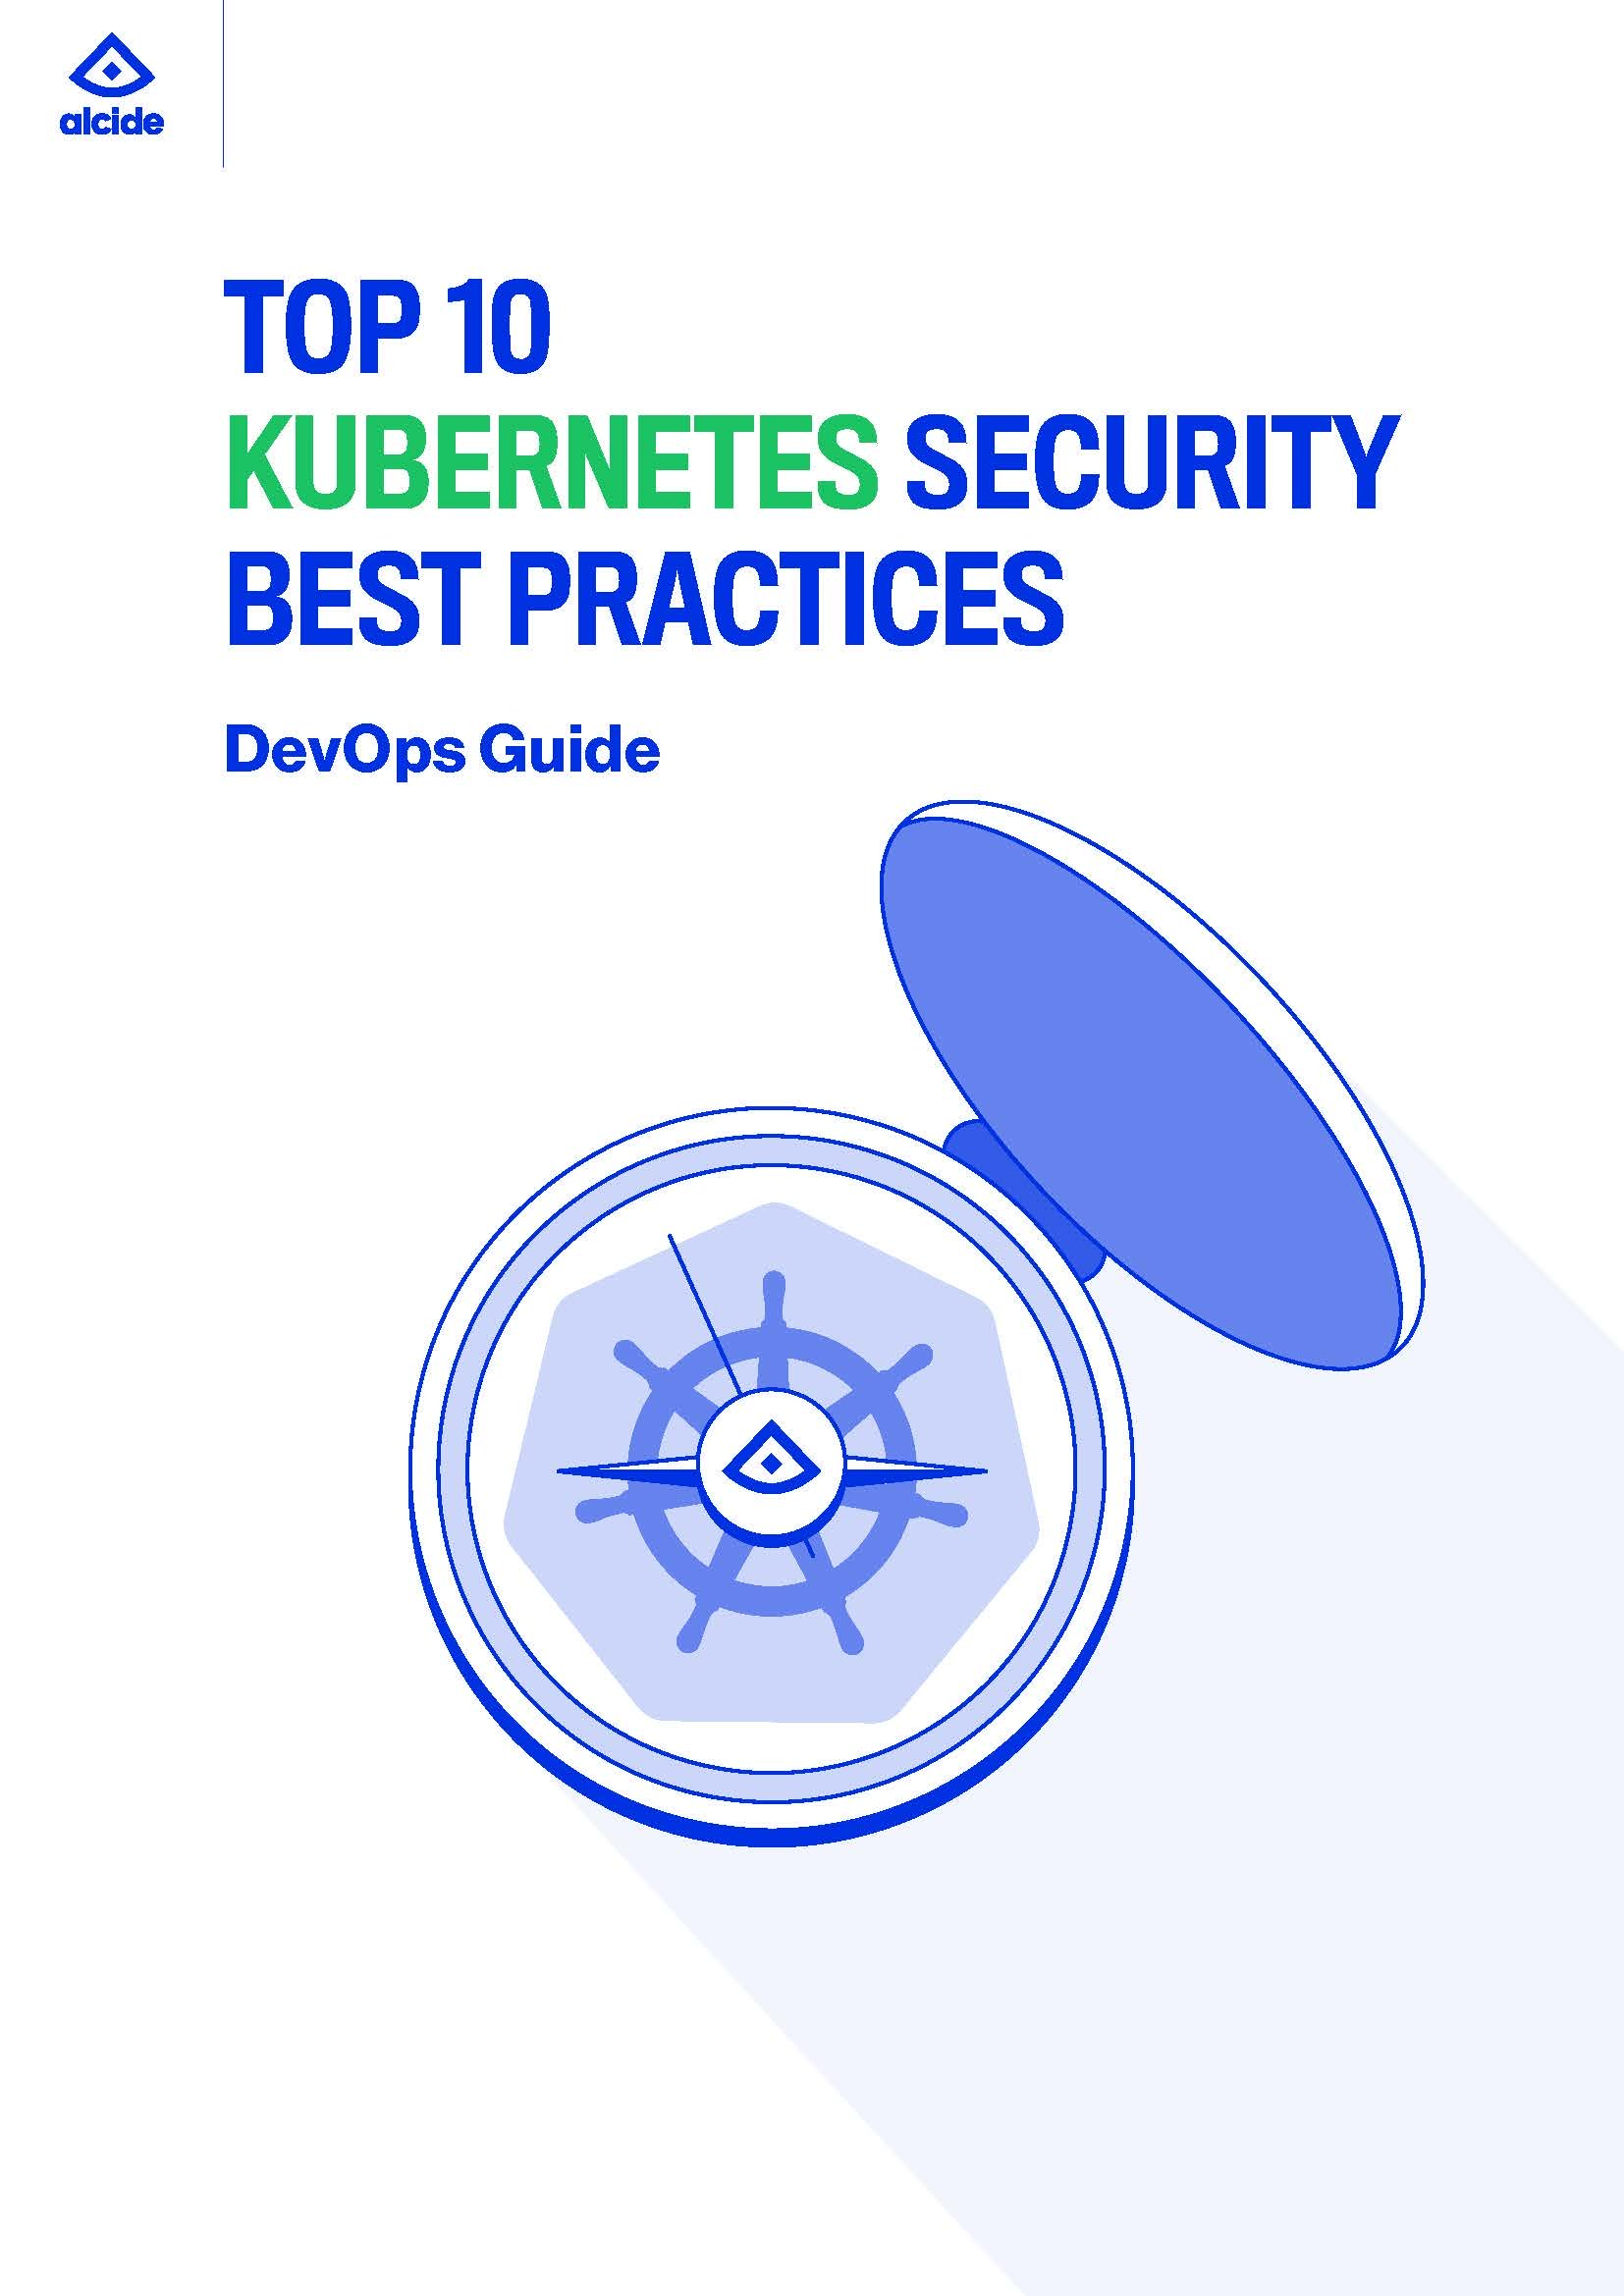 Top 10 Kubernetes Security Best Practices